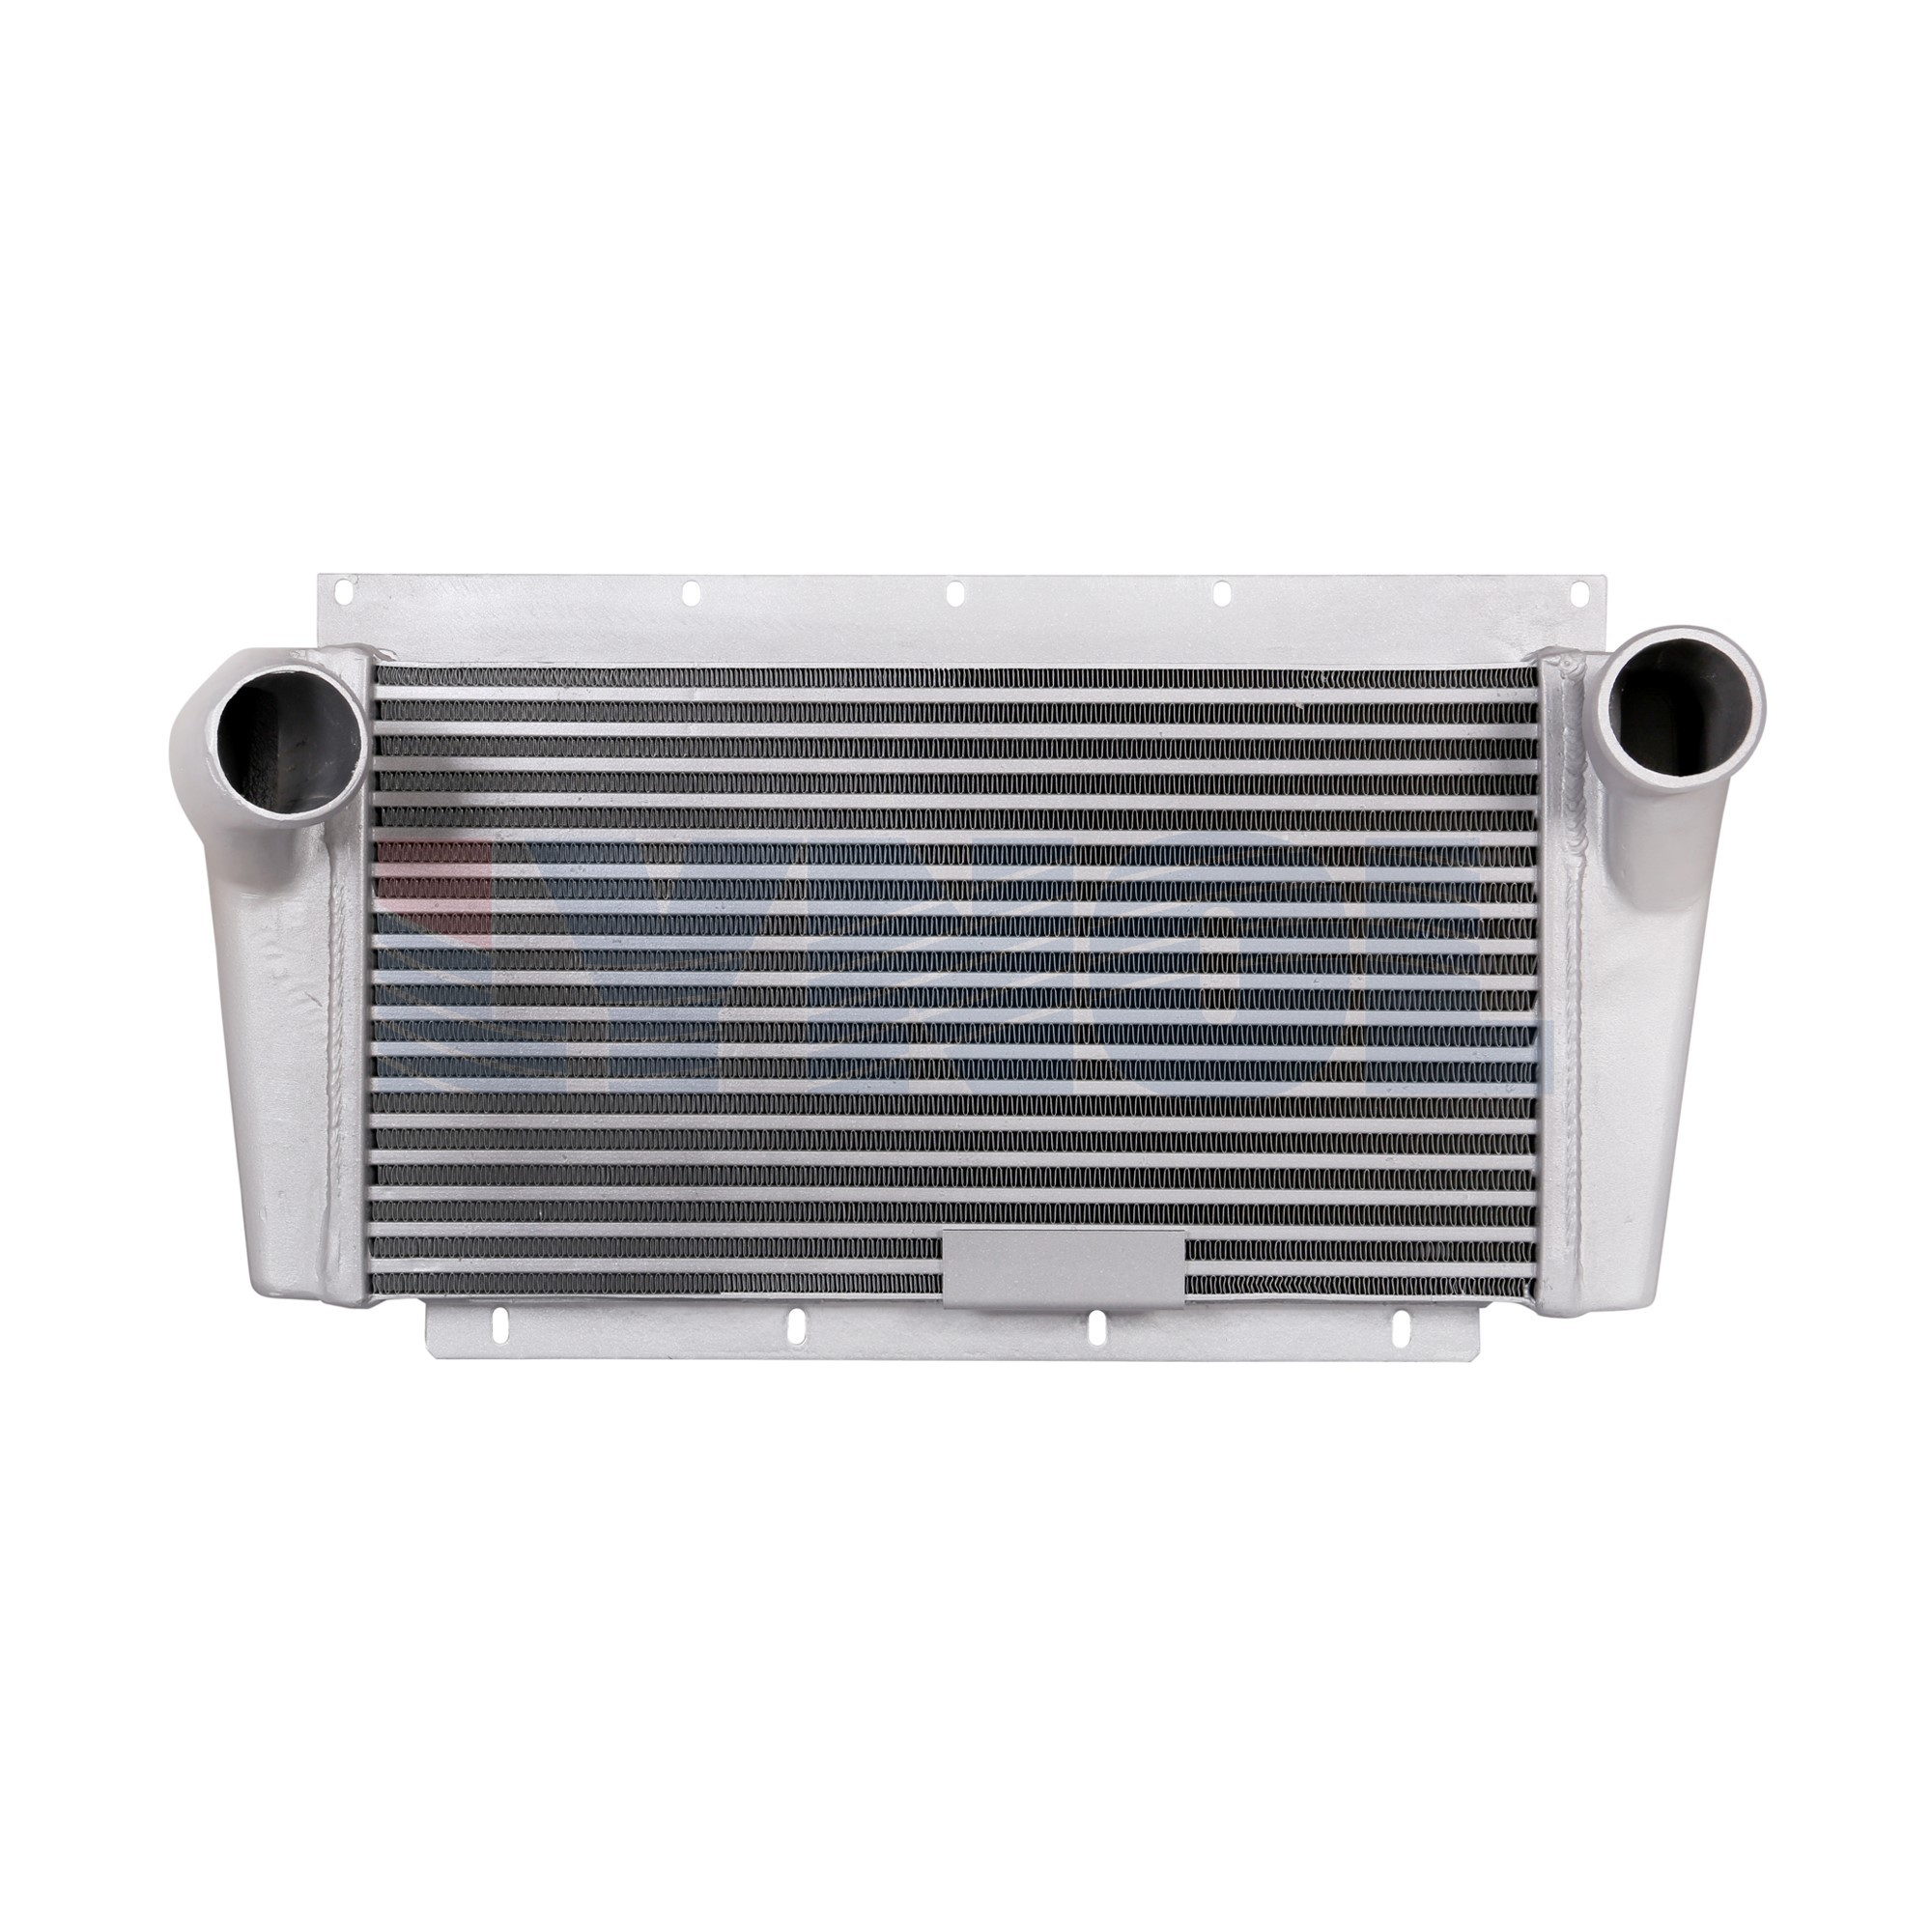 2408-008 - International Charge Air Cooler